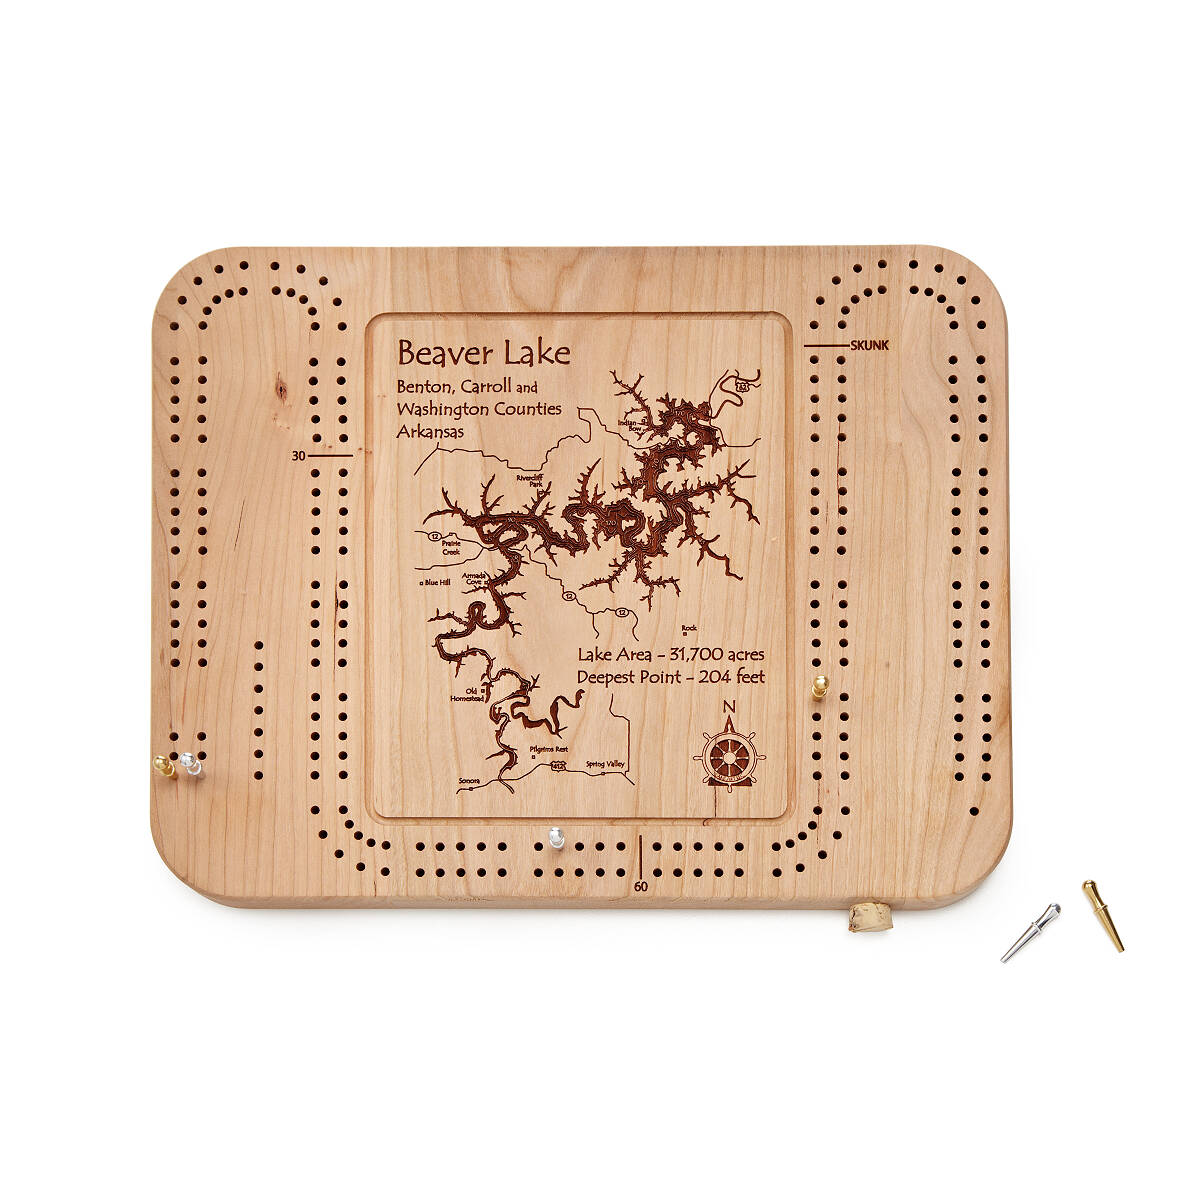 custom lake art cribbage board vacation board games uncommongoods